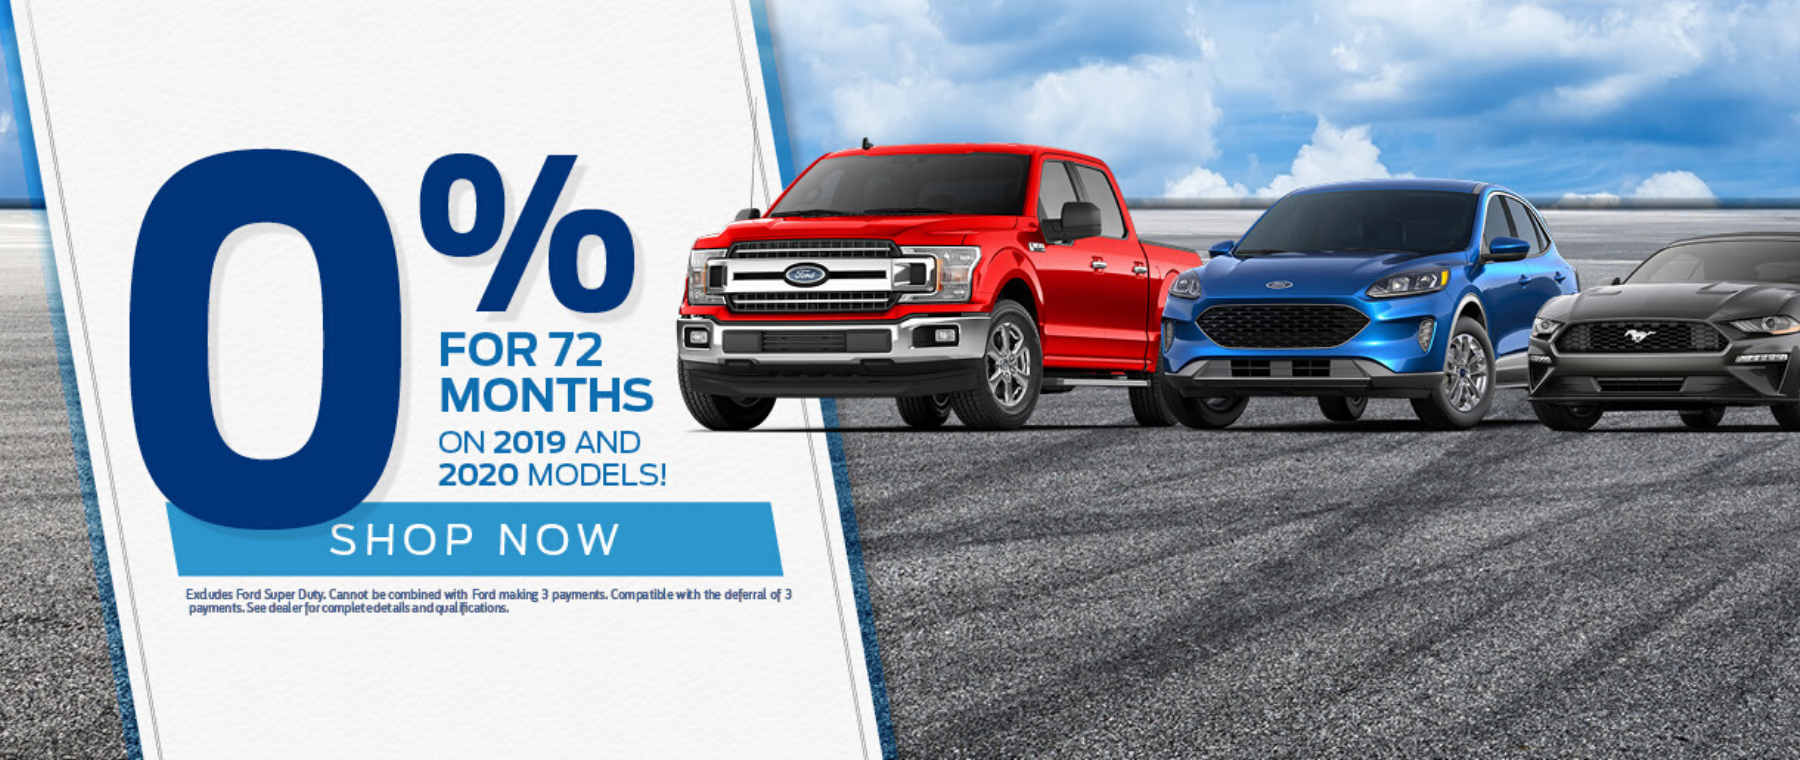 Bayer_Ford_0%_72_Months